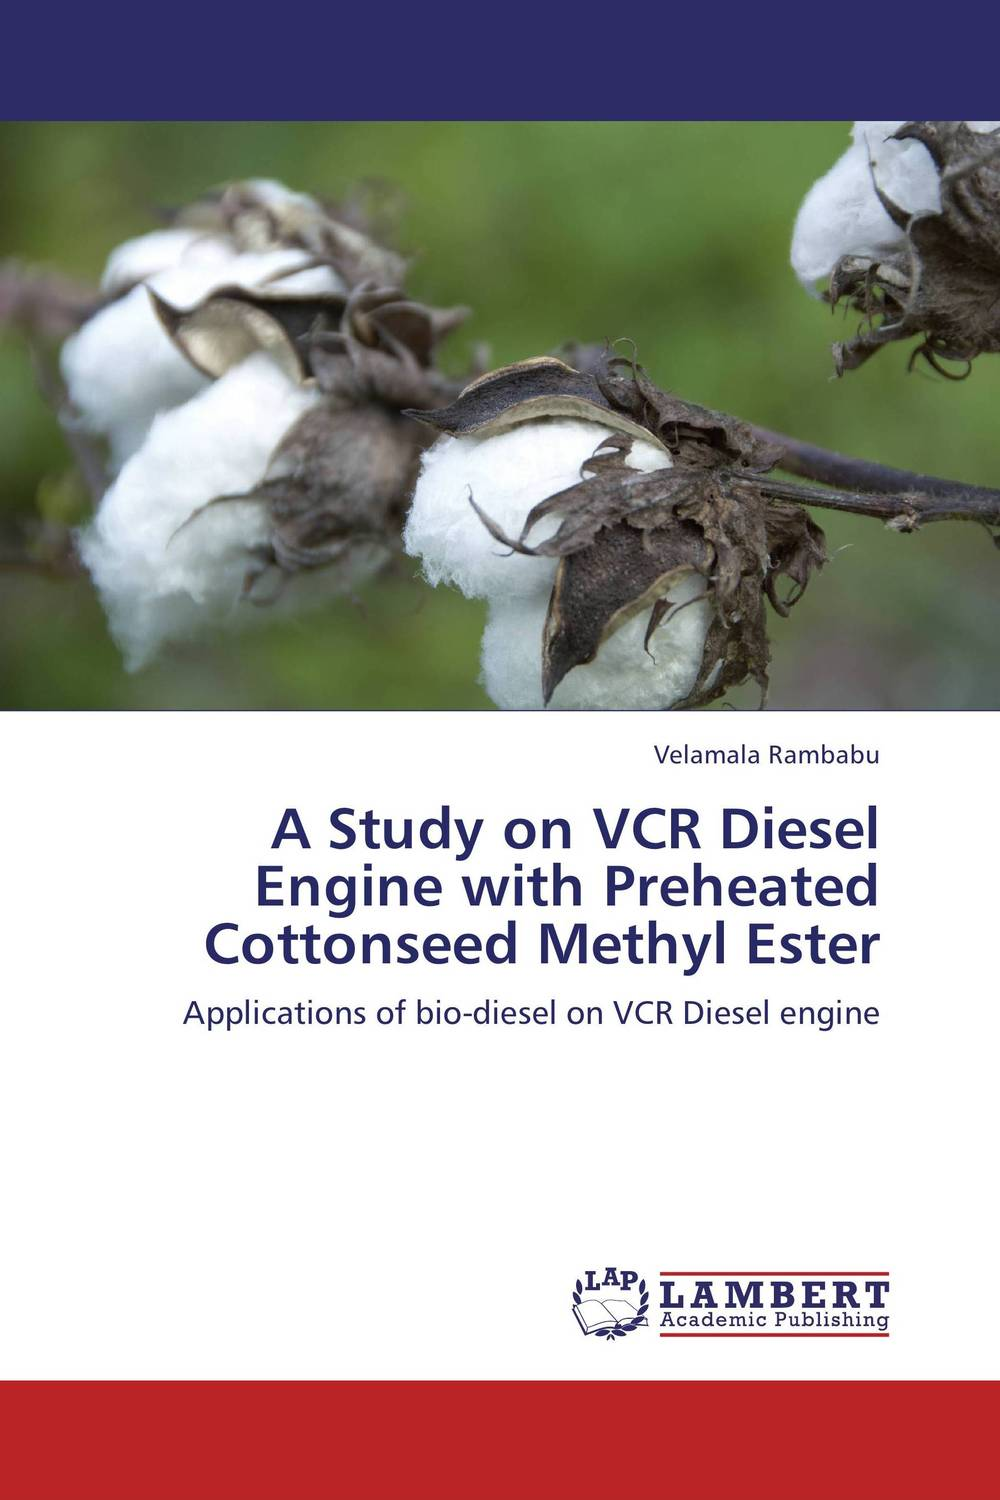 A Study on VCR Diesel Engine with Preheated Cottonseed Methyl Ester ocma mec 1 recommendations for the protection of diesel engines operat in hazard areas